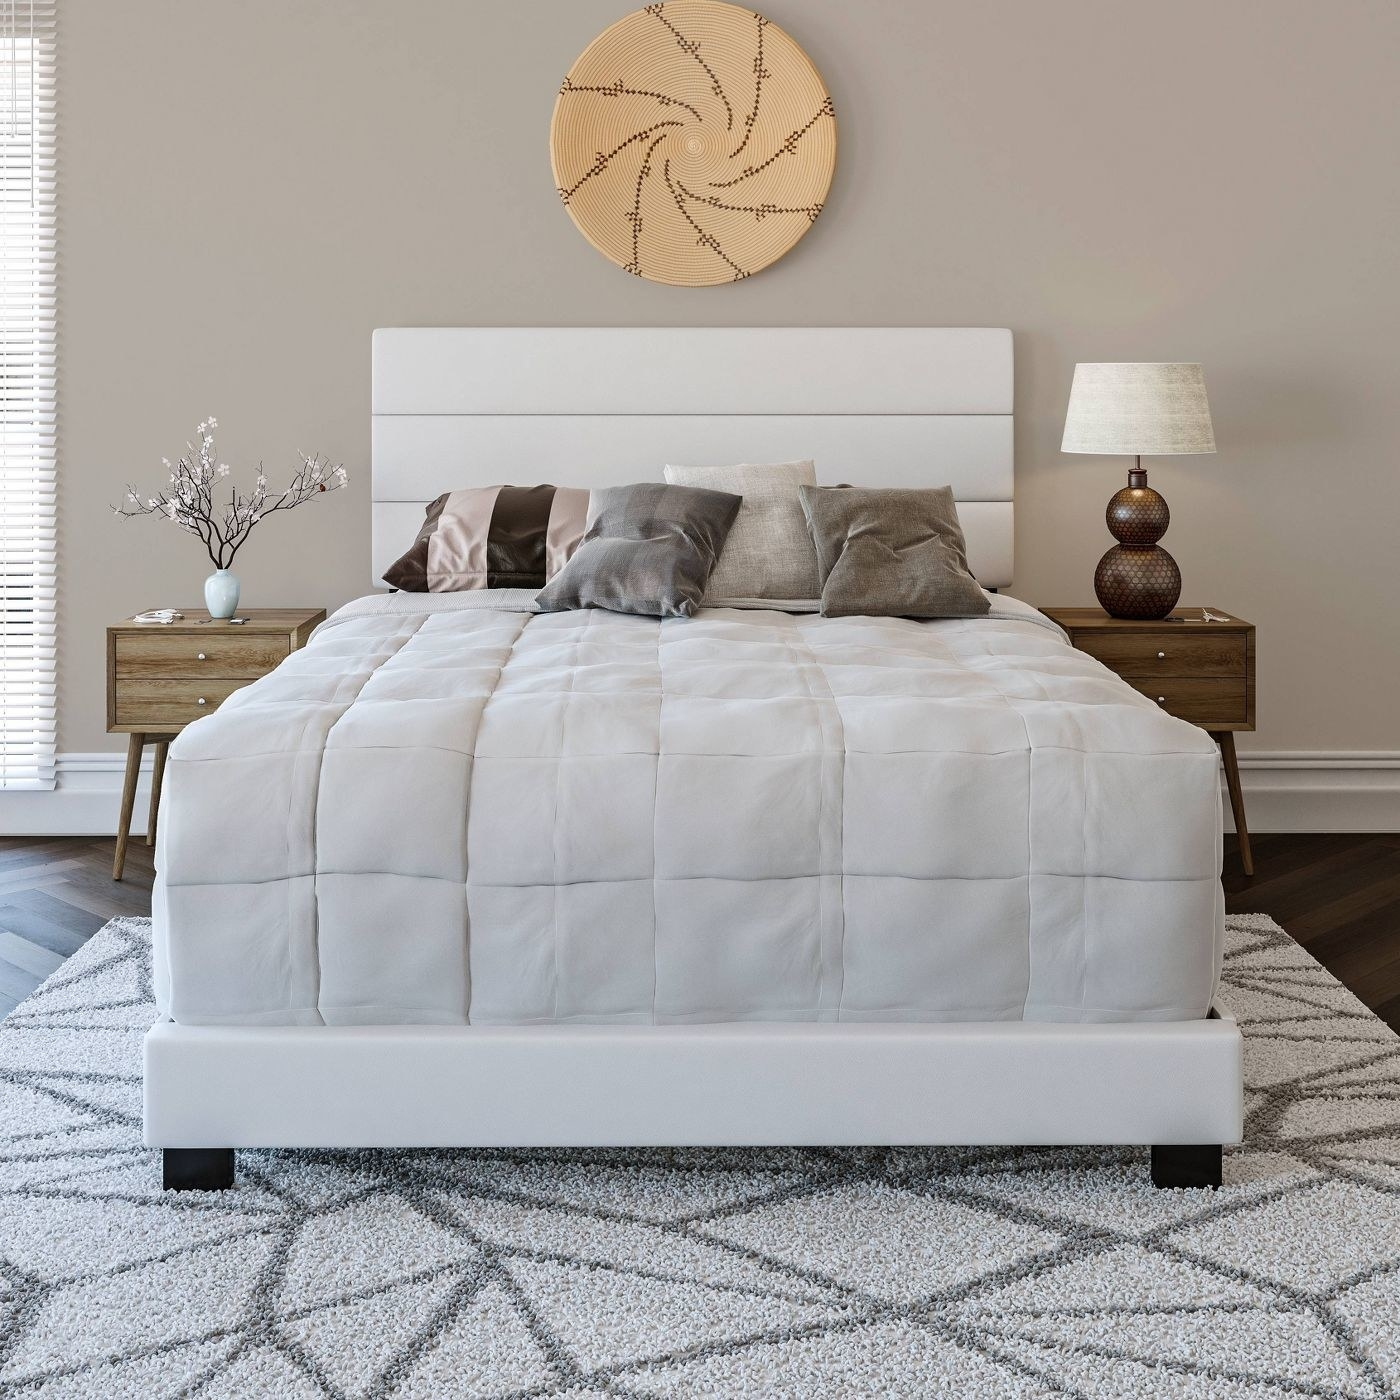 The white faux leather upholstered platform bed